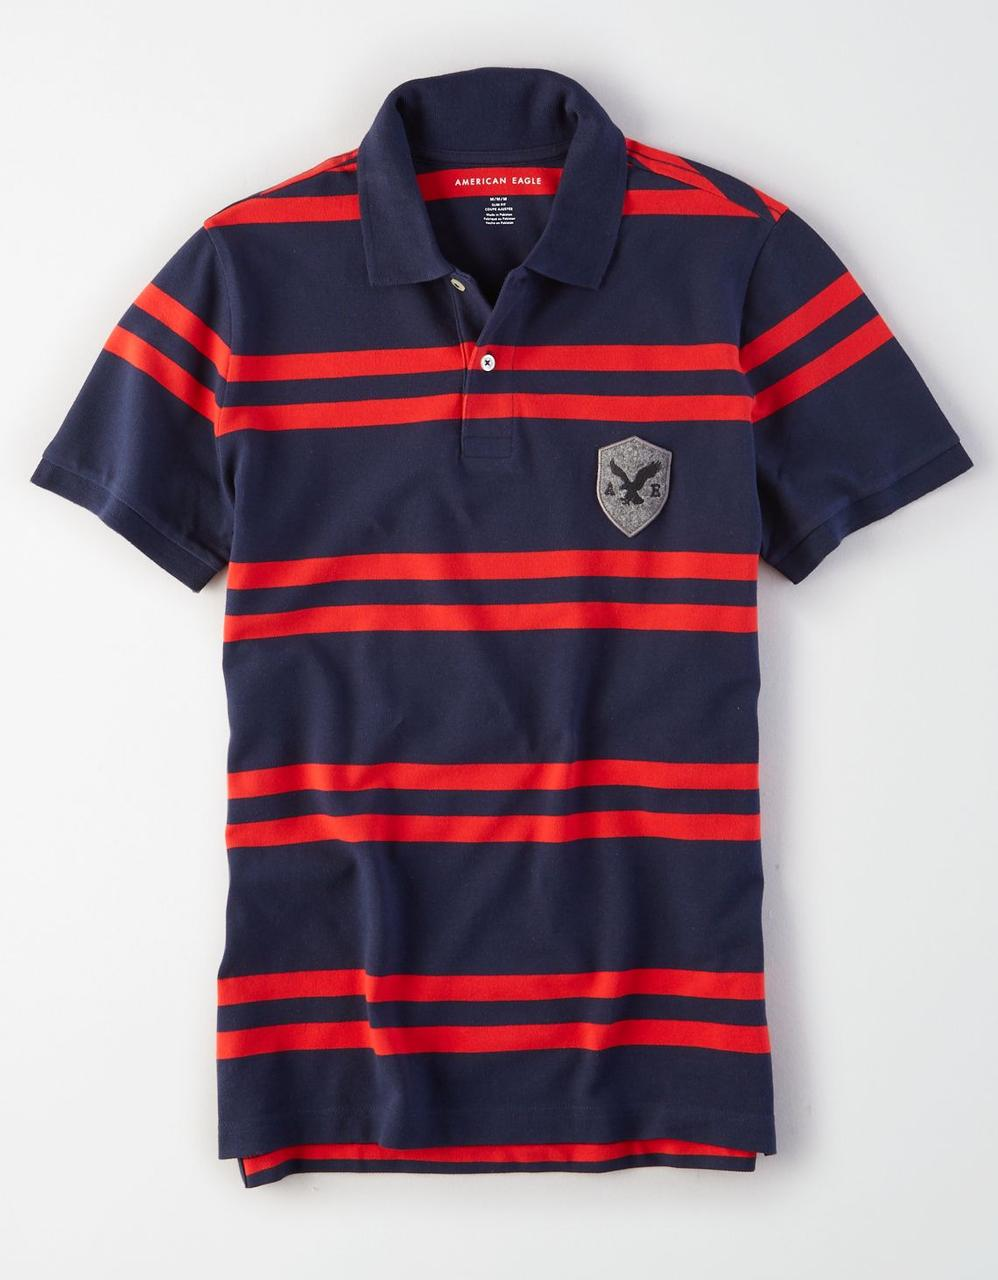 ac333cce7c American Eagle Polo T-Shirts, AE STRIPED RUGBY POLO for Men at Aeo.in